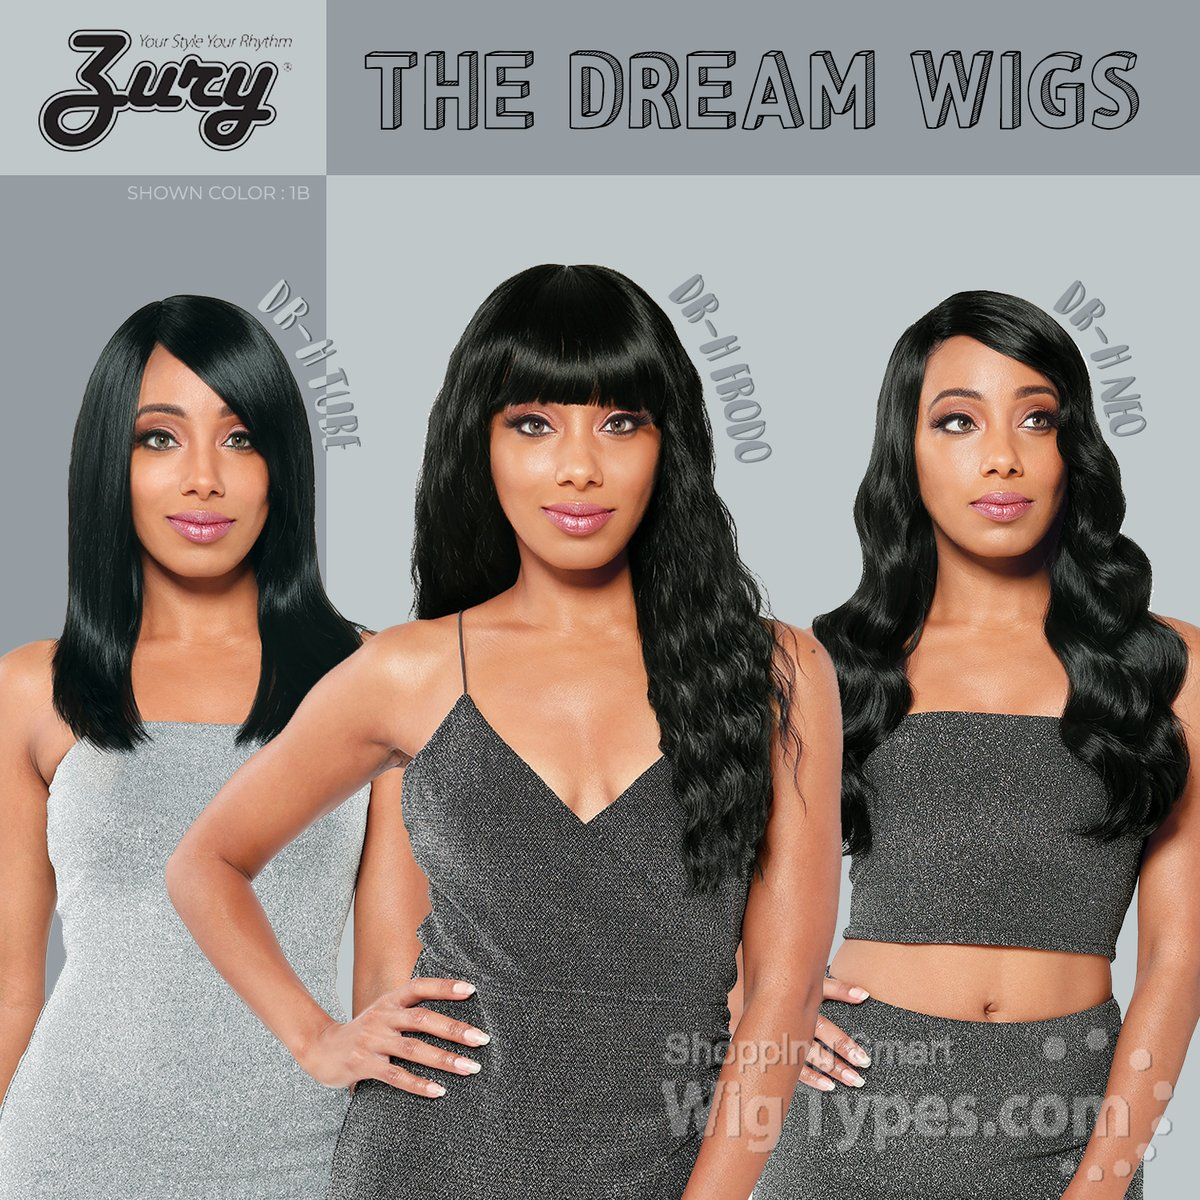 Zury Sis The Dream Synthetic Hair Wigs (https://bit.ly/2zYkaWQ)  Shown Color : 1B . . . . #wigtypes #wigtypes4u #wigtypesdotcom #trendyhair #protectivestyles #blackgirlhair #blackgirlmagic #instahair #Longwigs #syntheticwigs #zurysis #thedreamwig #drhneo #drhtube #drhfrodopic.twitter.com/qlJvzsR9Rs